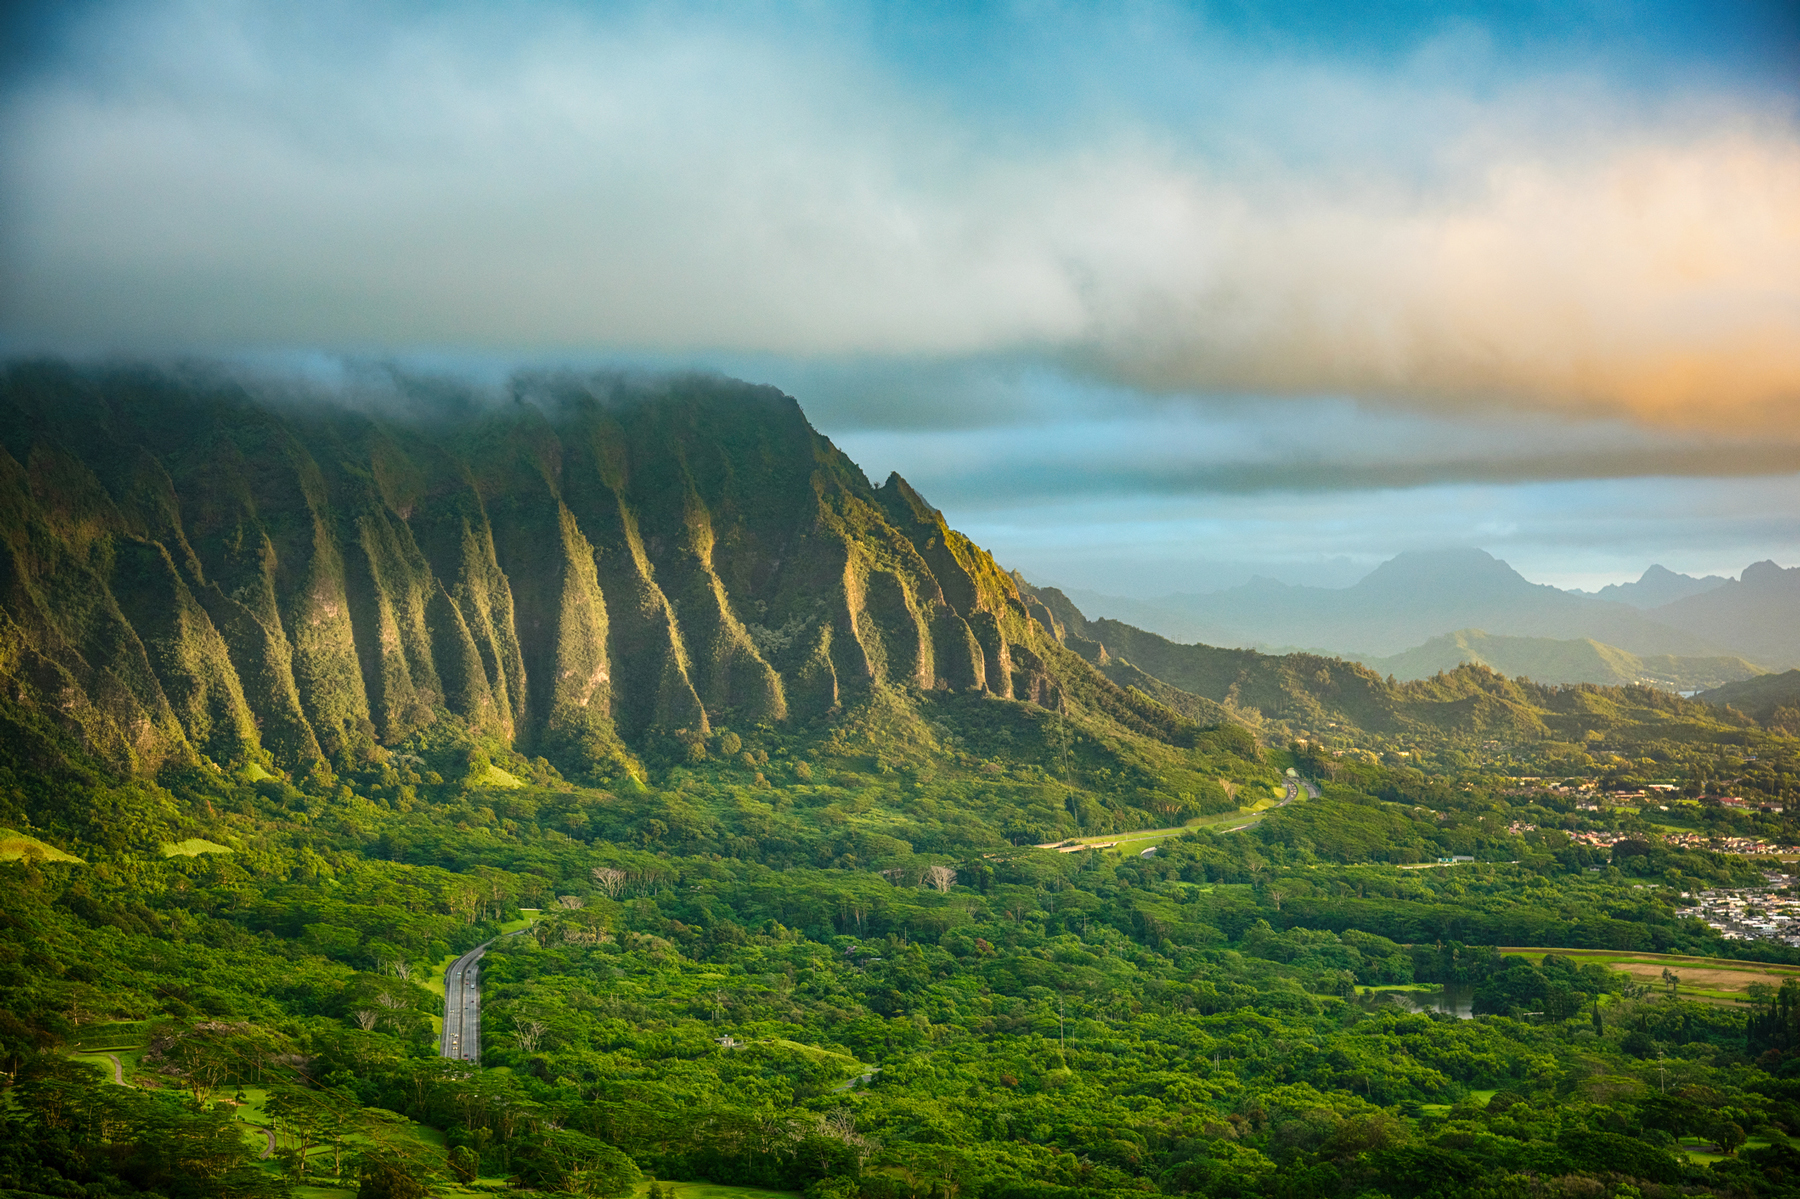 The beautiful landscape of interior Oahu at sunrise just after a storm had cleared.